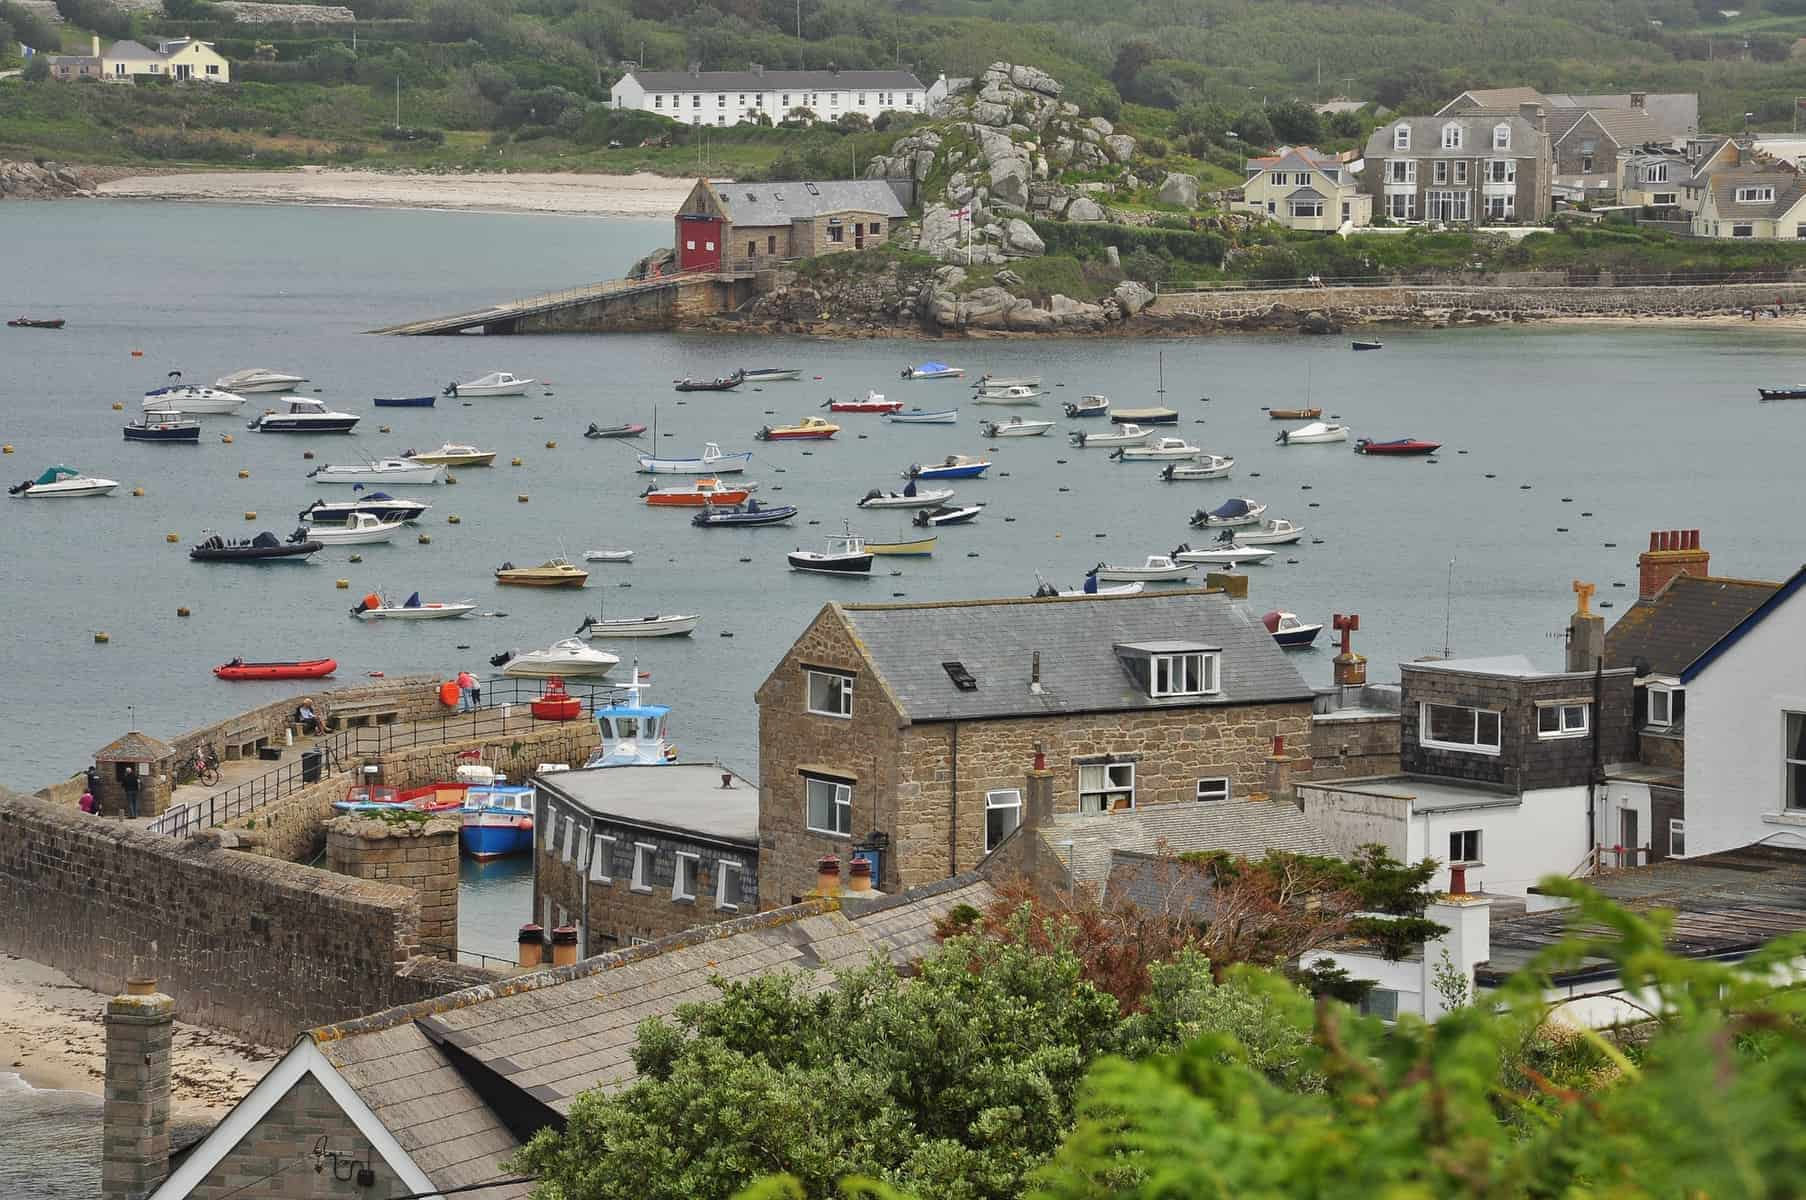 Isles of Scilly, old harbor and waterfront of Saint Mary - Hugh town. British summer resort, Cornwall, England, Britain.